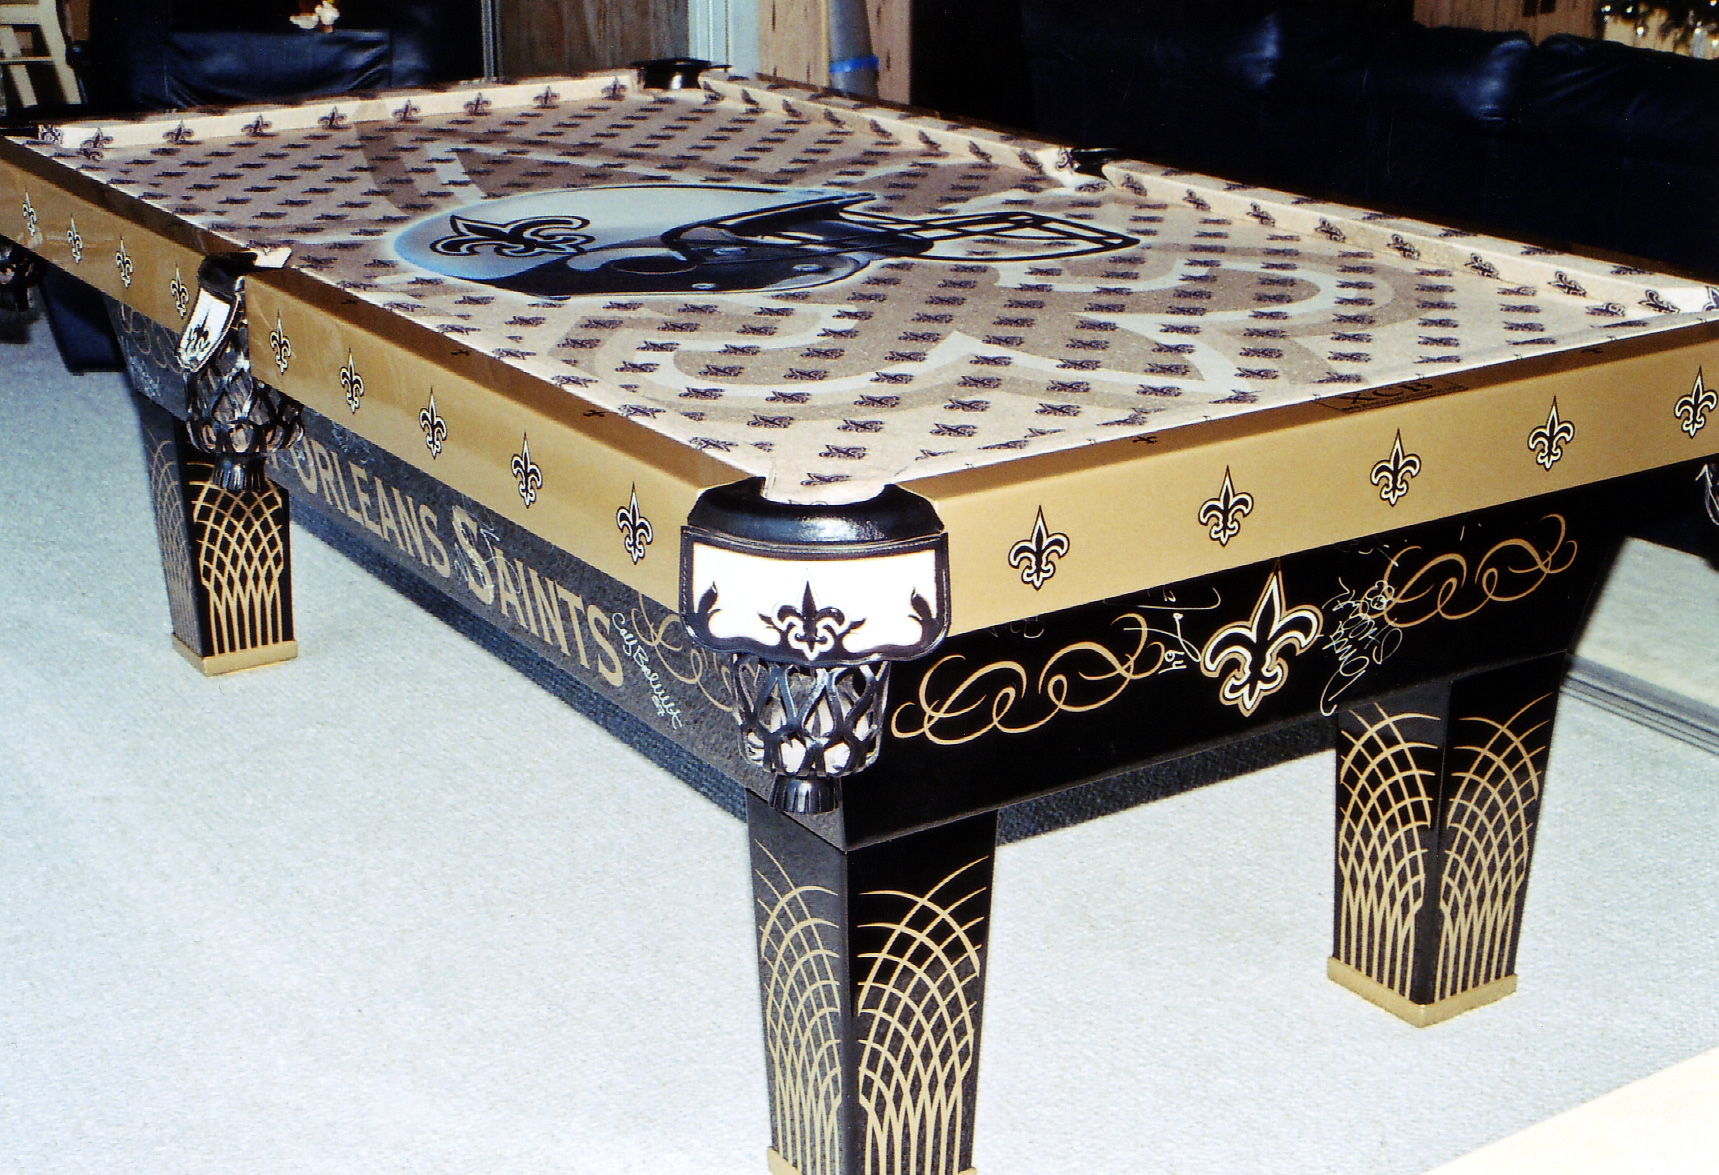 New Orleans Saints Themed Pool Table ...